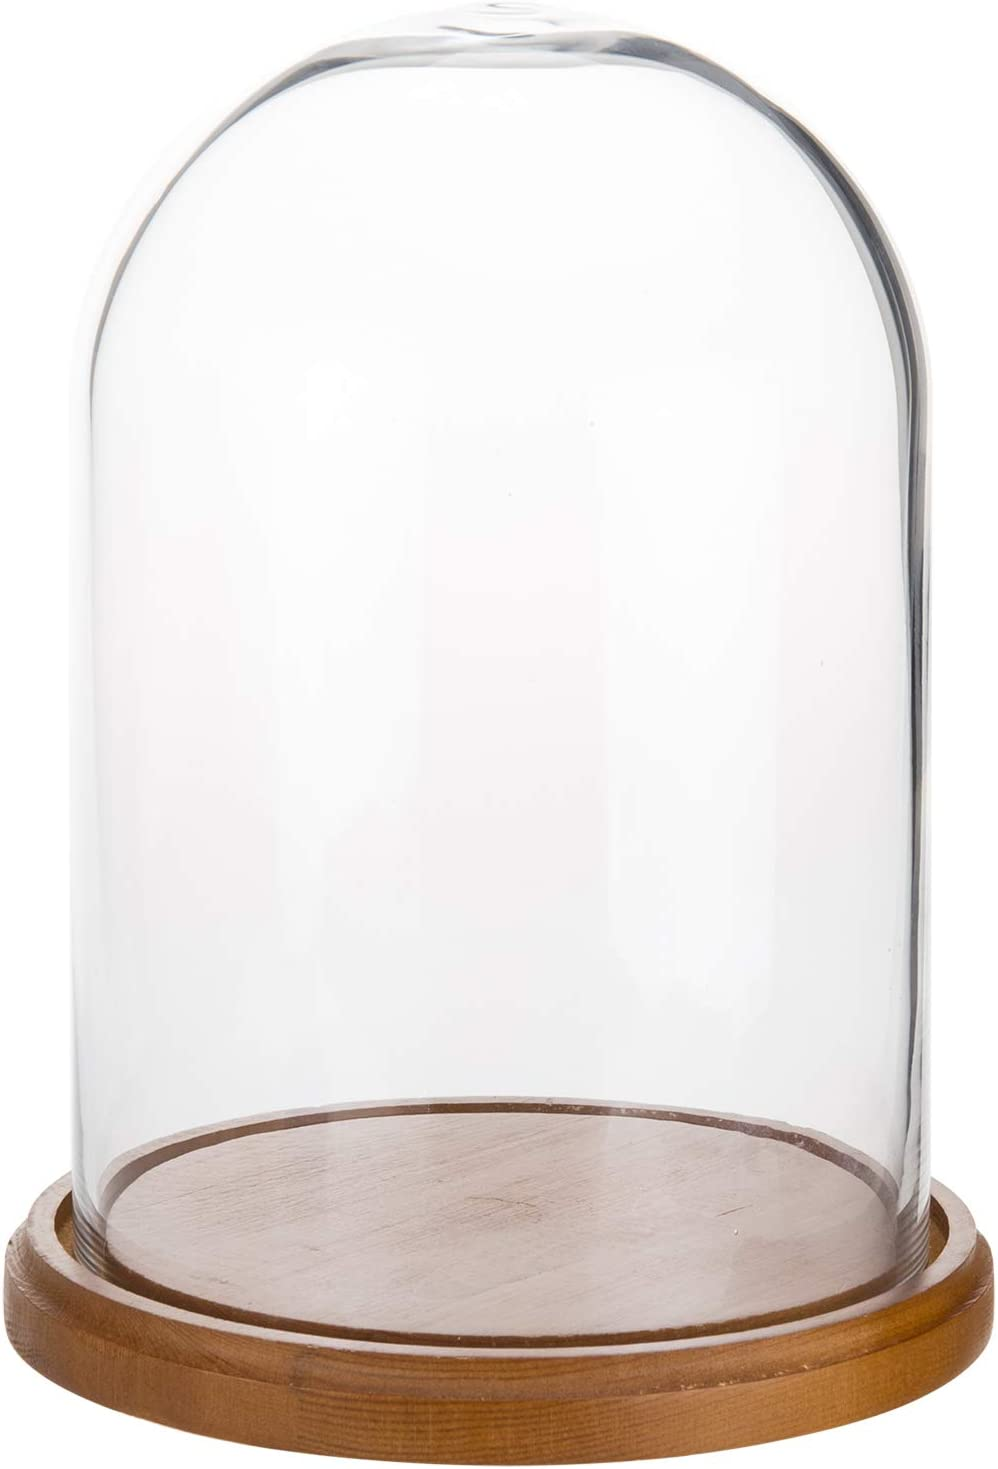 MyGift 7-inch Clear Glass Display Cloche Dome with Brown Wood Base